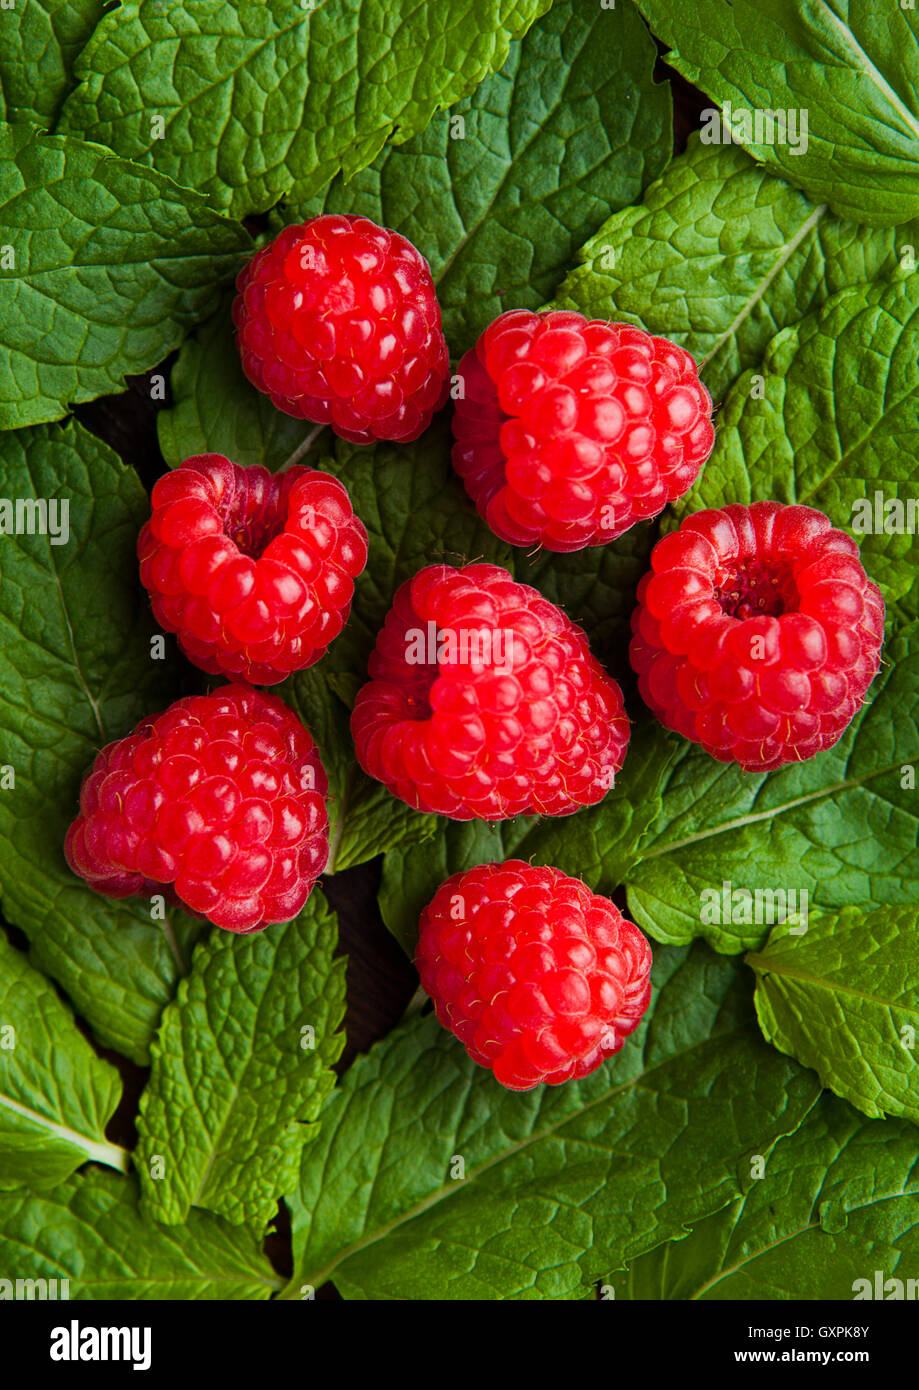 Raspberries on mint leaves clos up. Natural healthy food. Still life photography - Stock Image